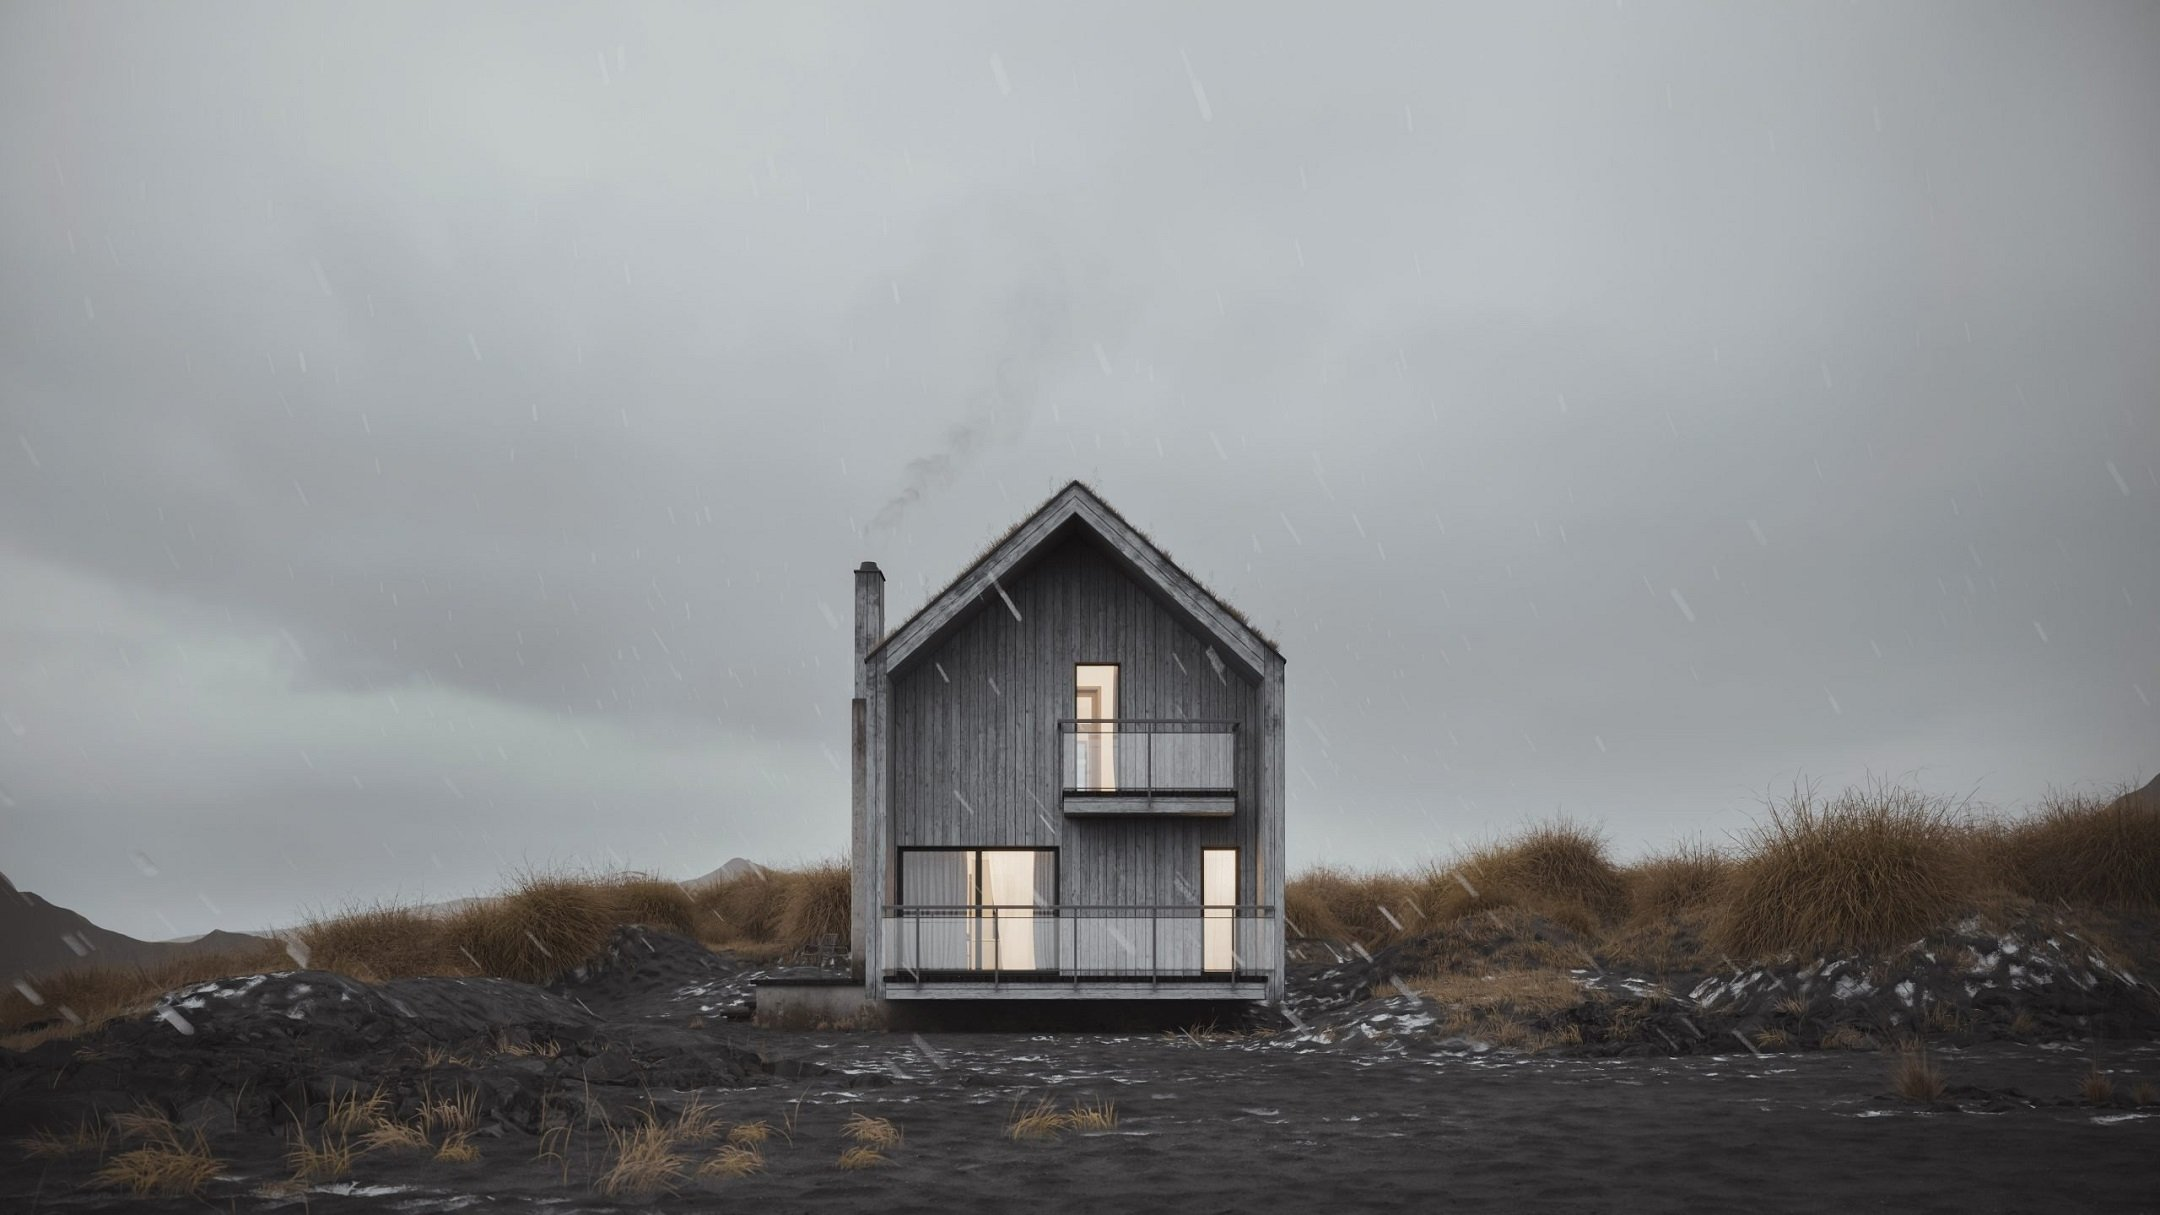 3D Visualization of a House in a Field